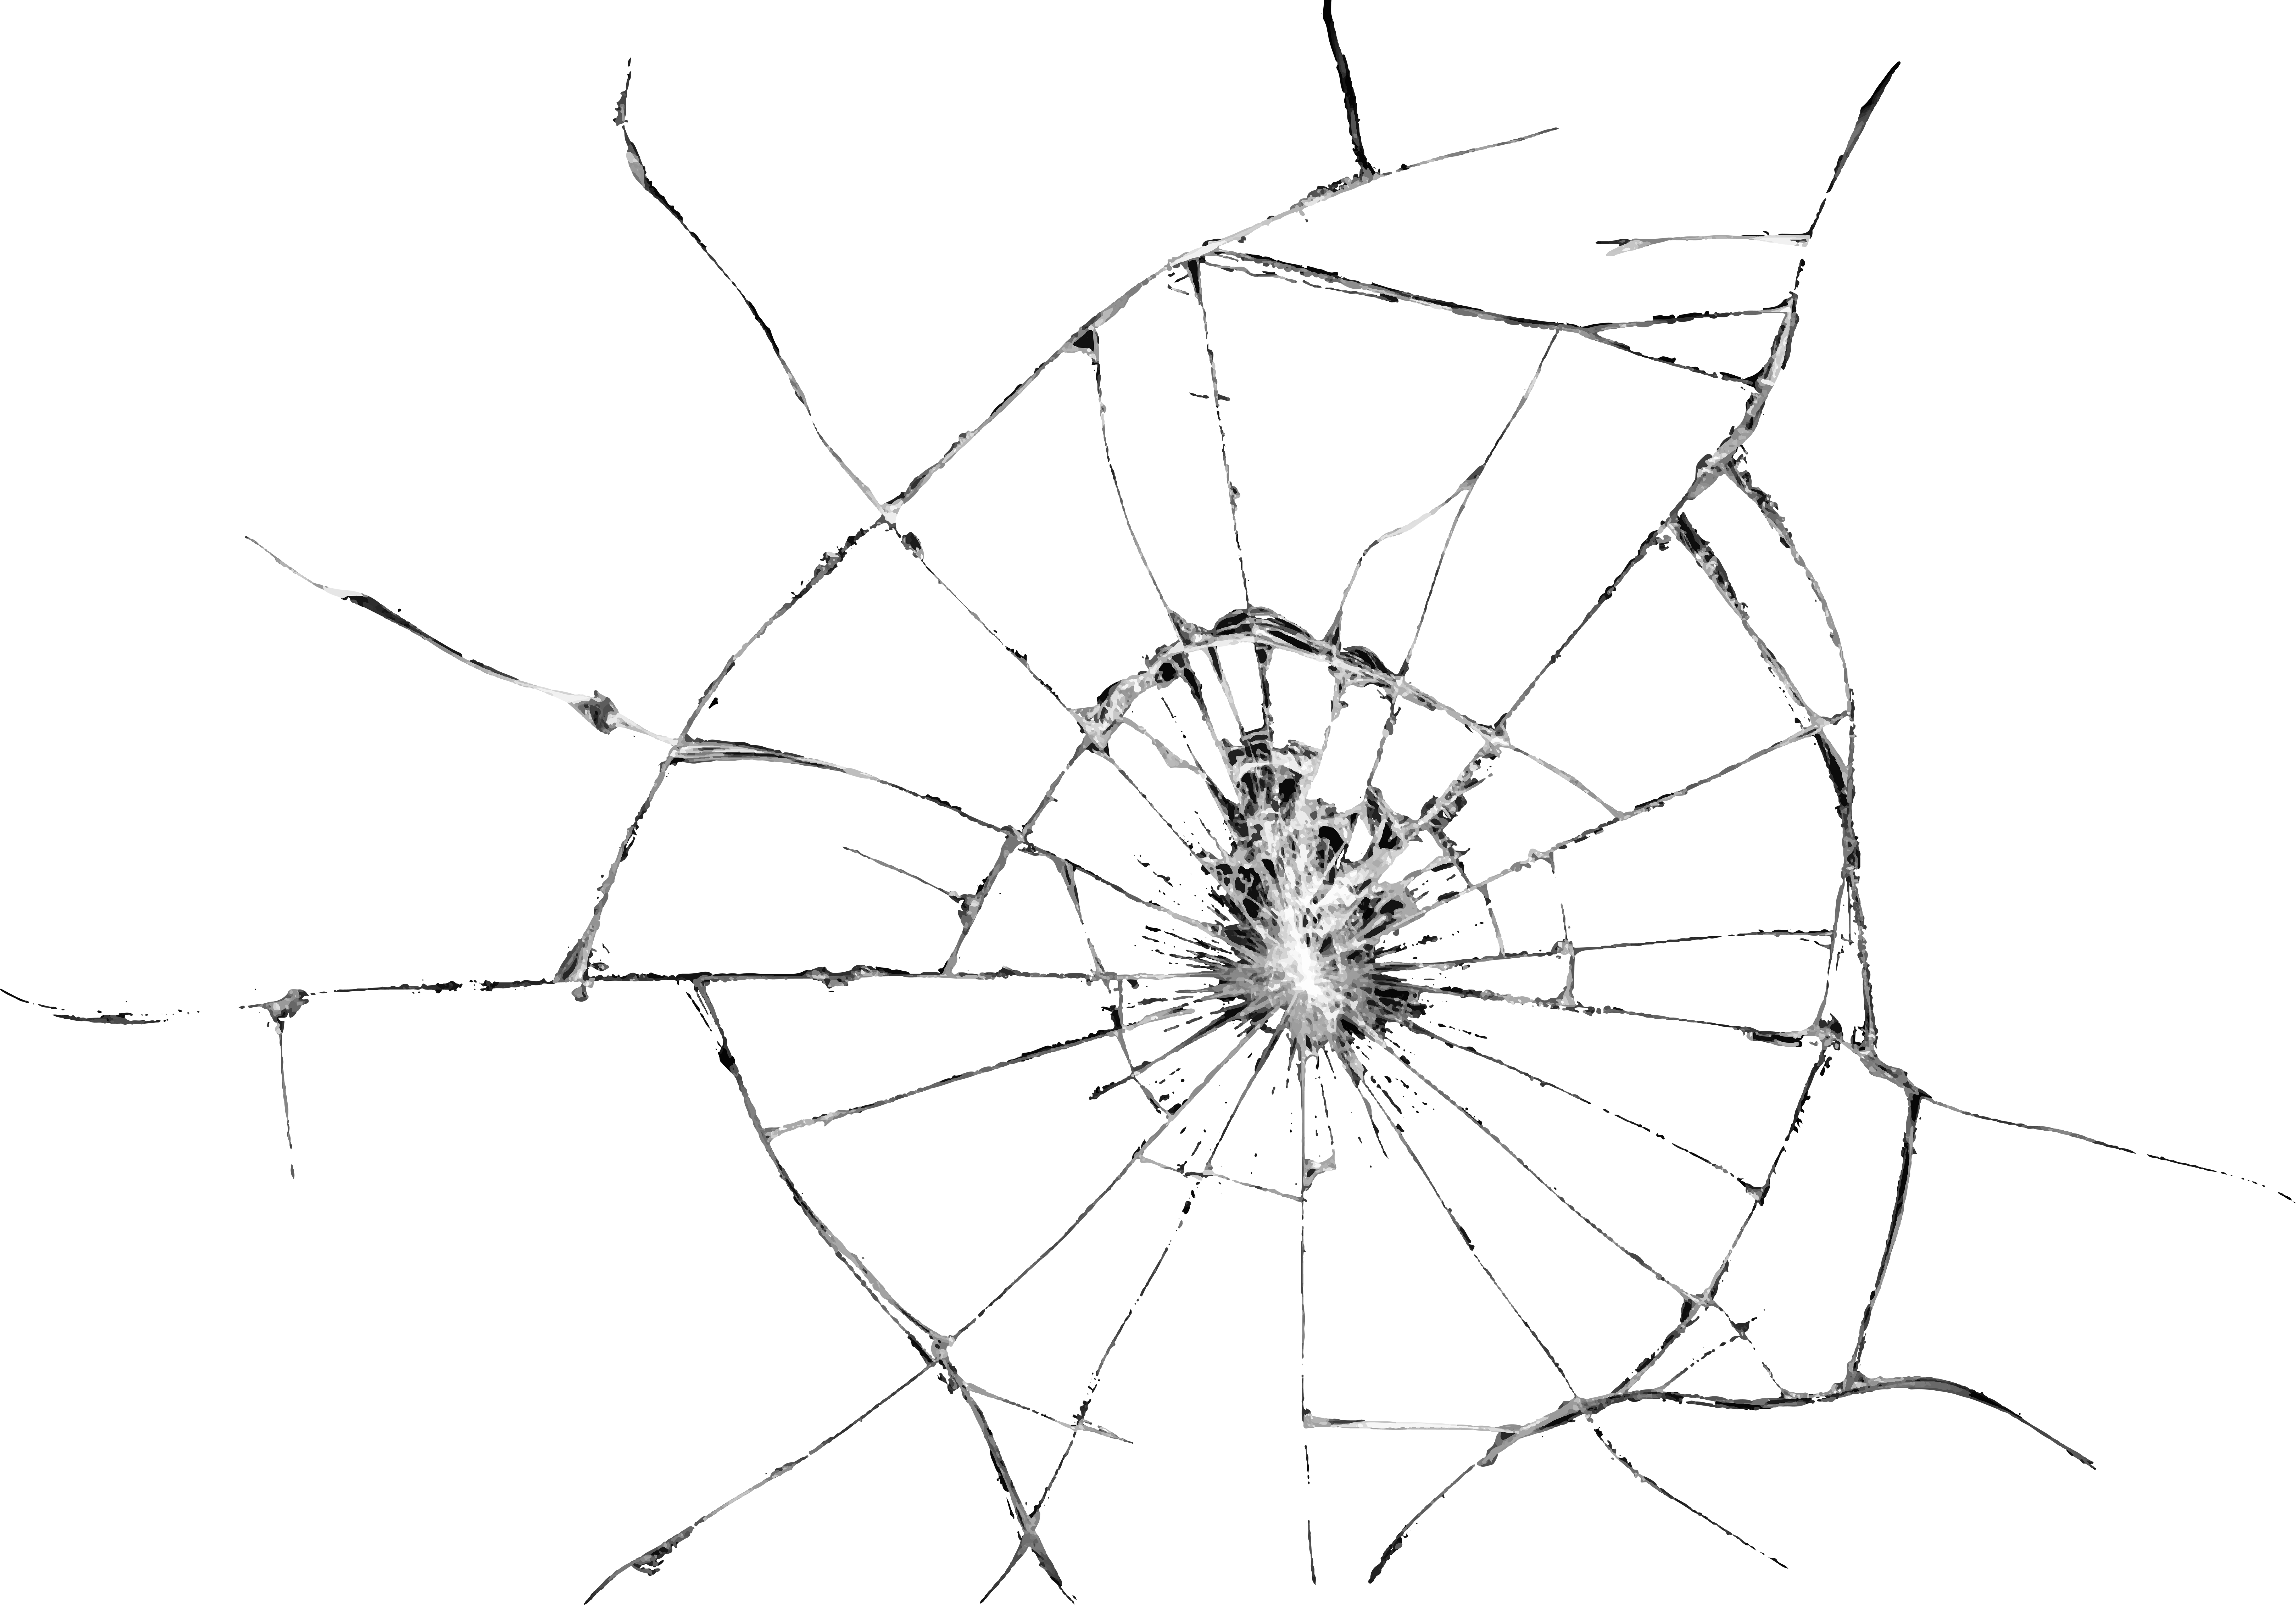 Cracked screen clipart png royalty free Broken Glass Effect Transparent PNG Clip Art Image | Gallery ... png royalty free